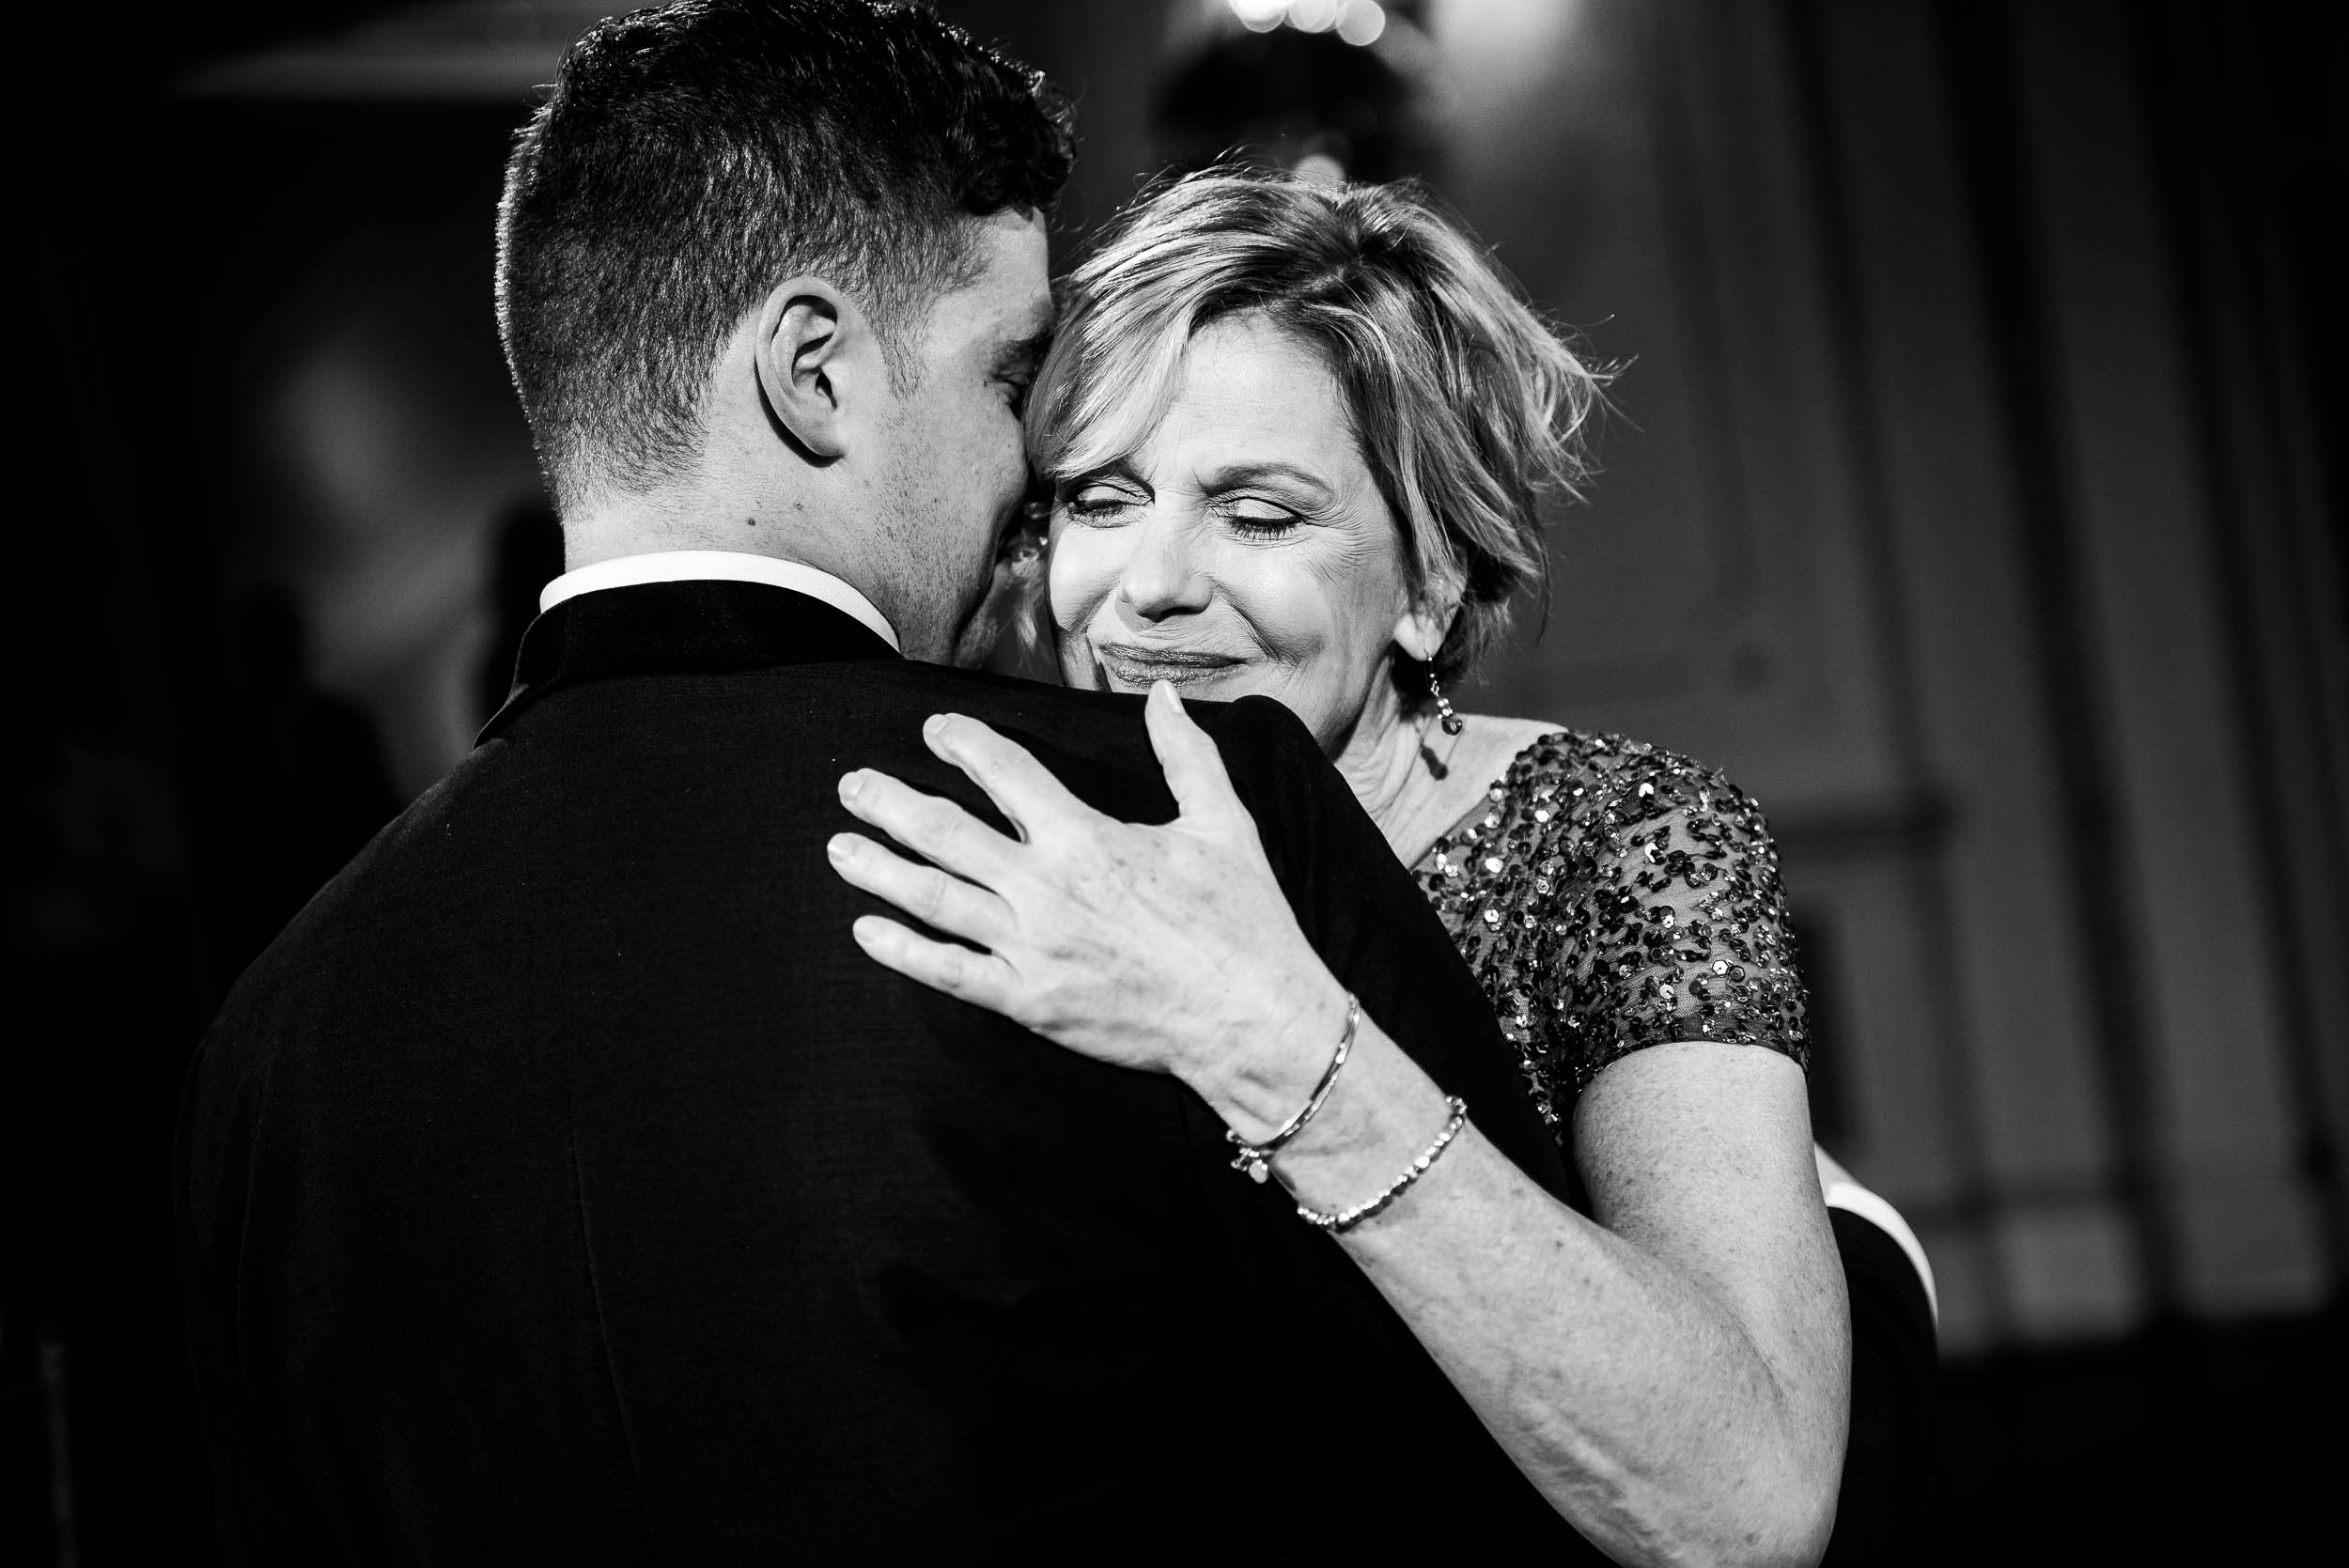 Mother/son dance for luxurious fall wedding at the Chicago Symphony Center captured by J. Brown Photography. See more wedding ideas at jbrownphotography.com!